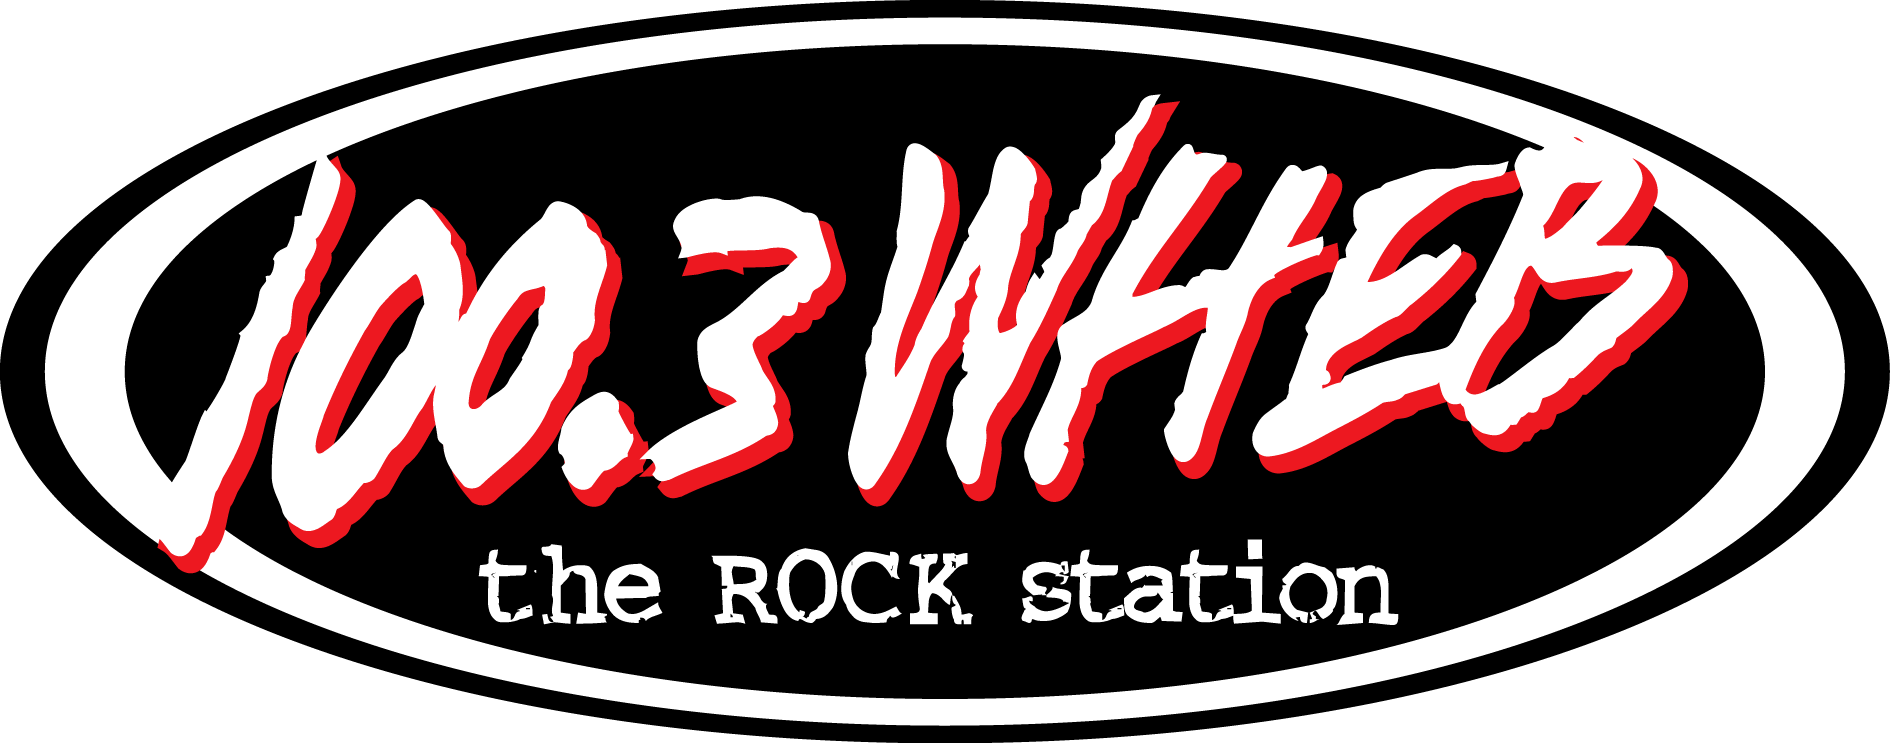 The Rock Station 100.3 WHEB Partyship!! Image